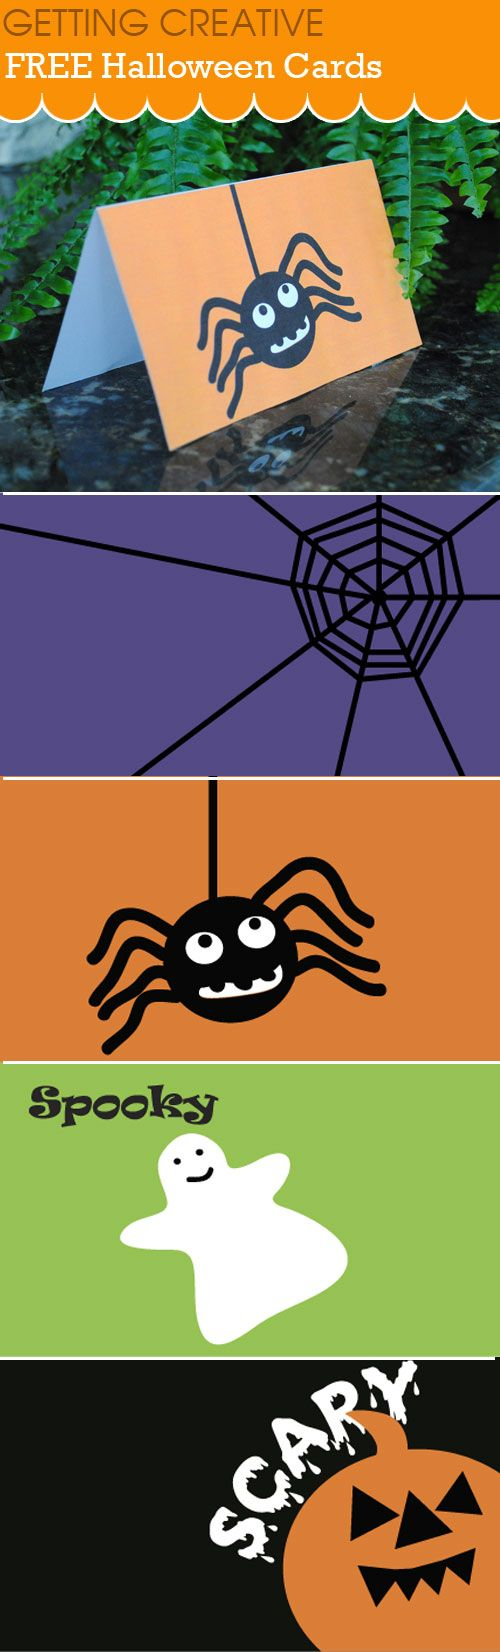 Download free Halloween cards for free. Great to use as Halloween party invites. there are four designs to chose from